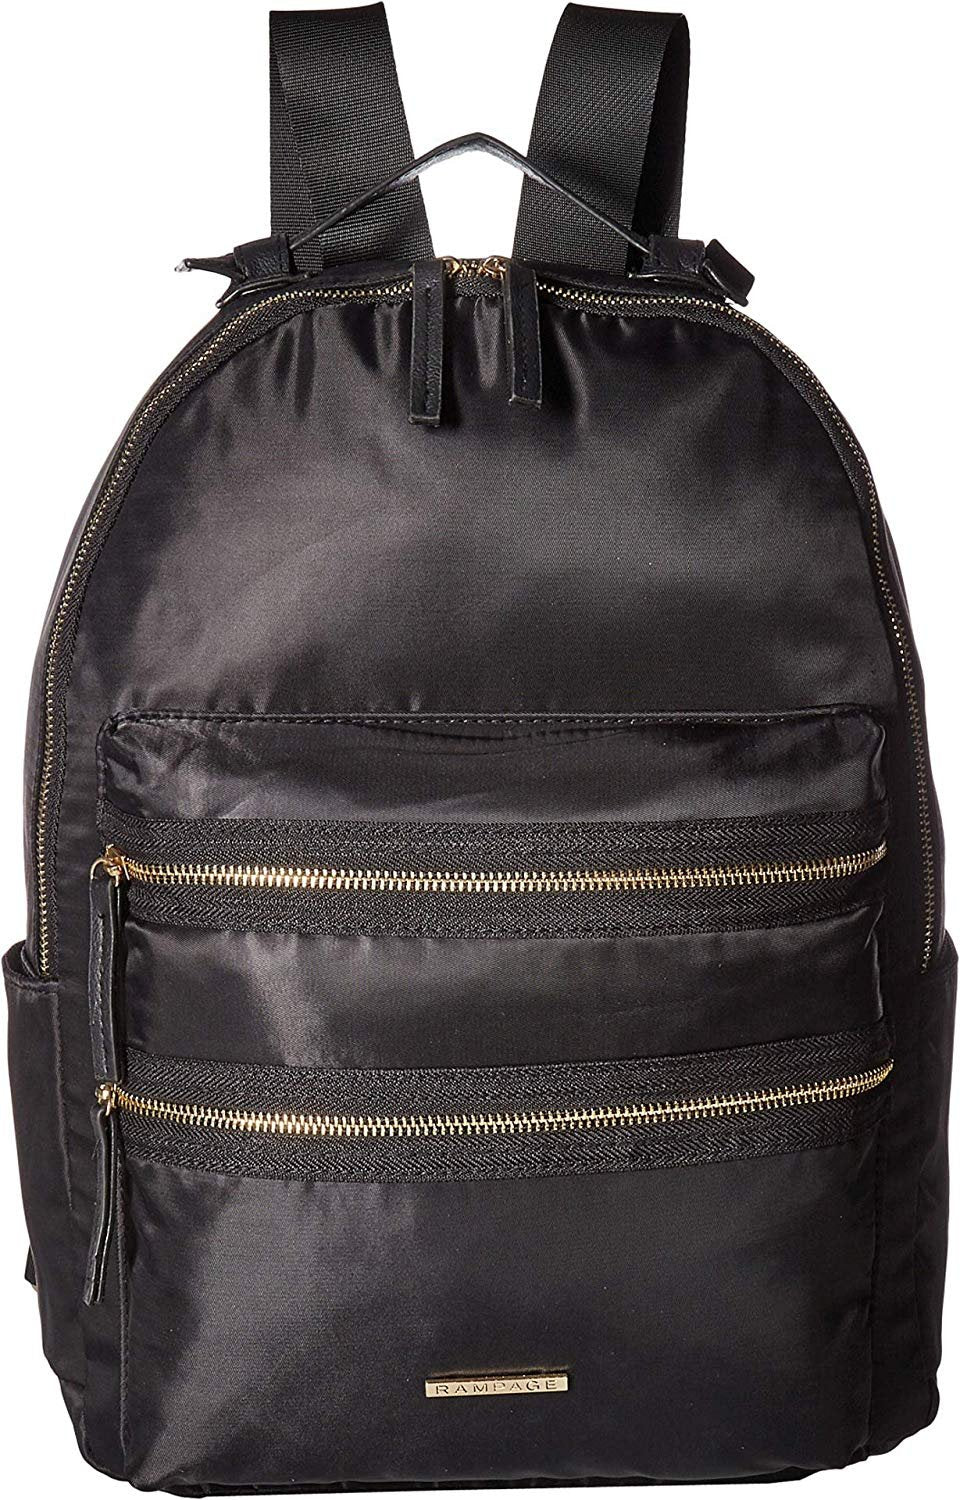 Rampage Womens Nylon Exposed Zipper Backpack